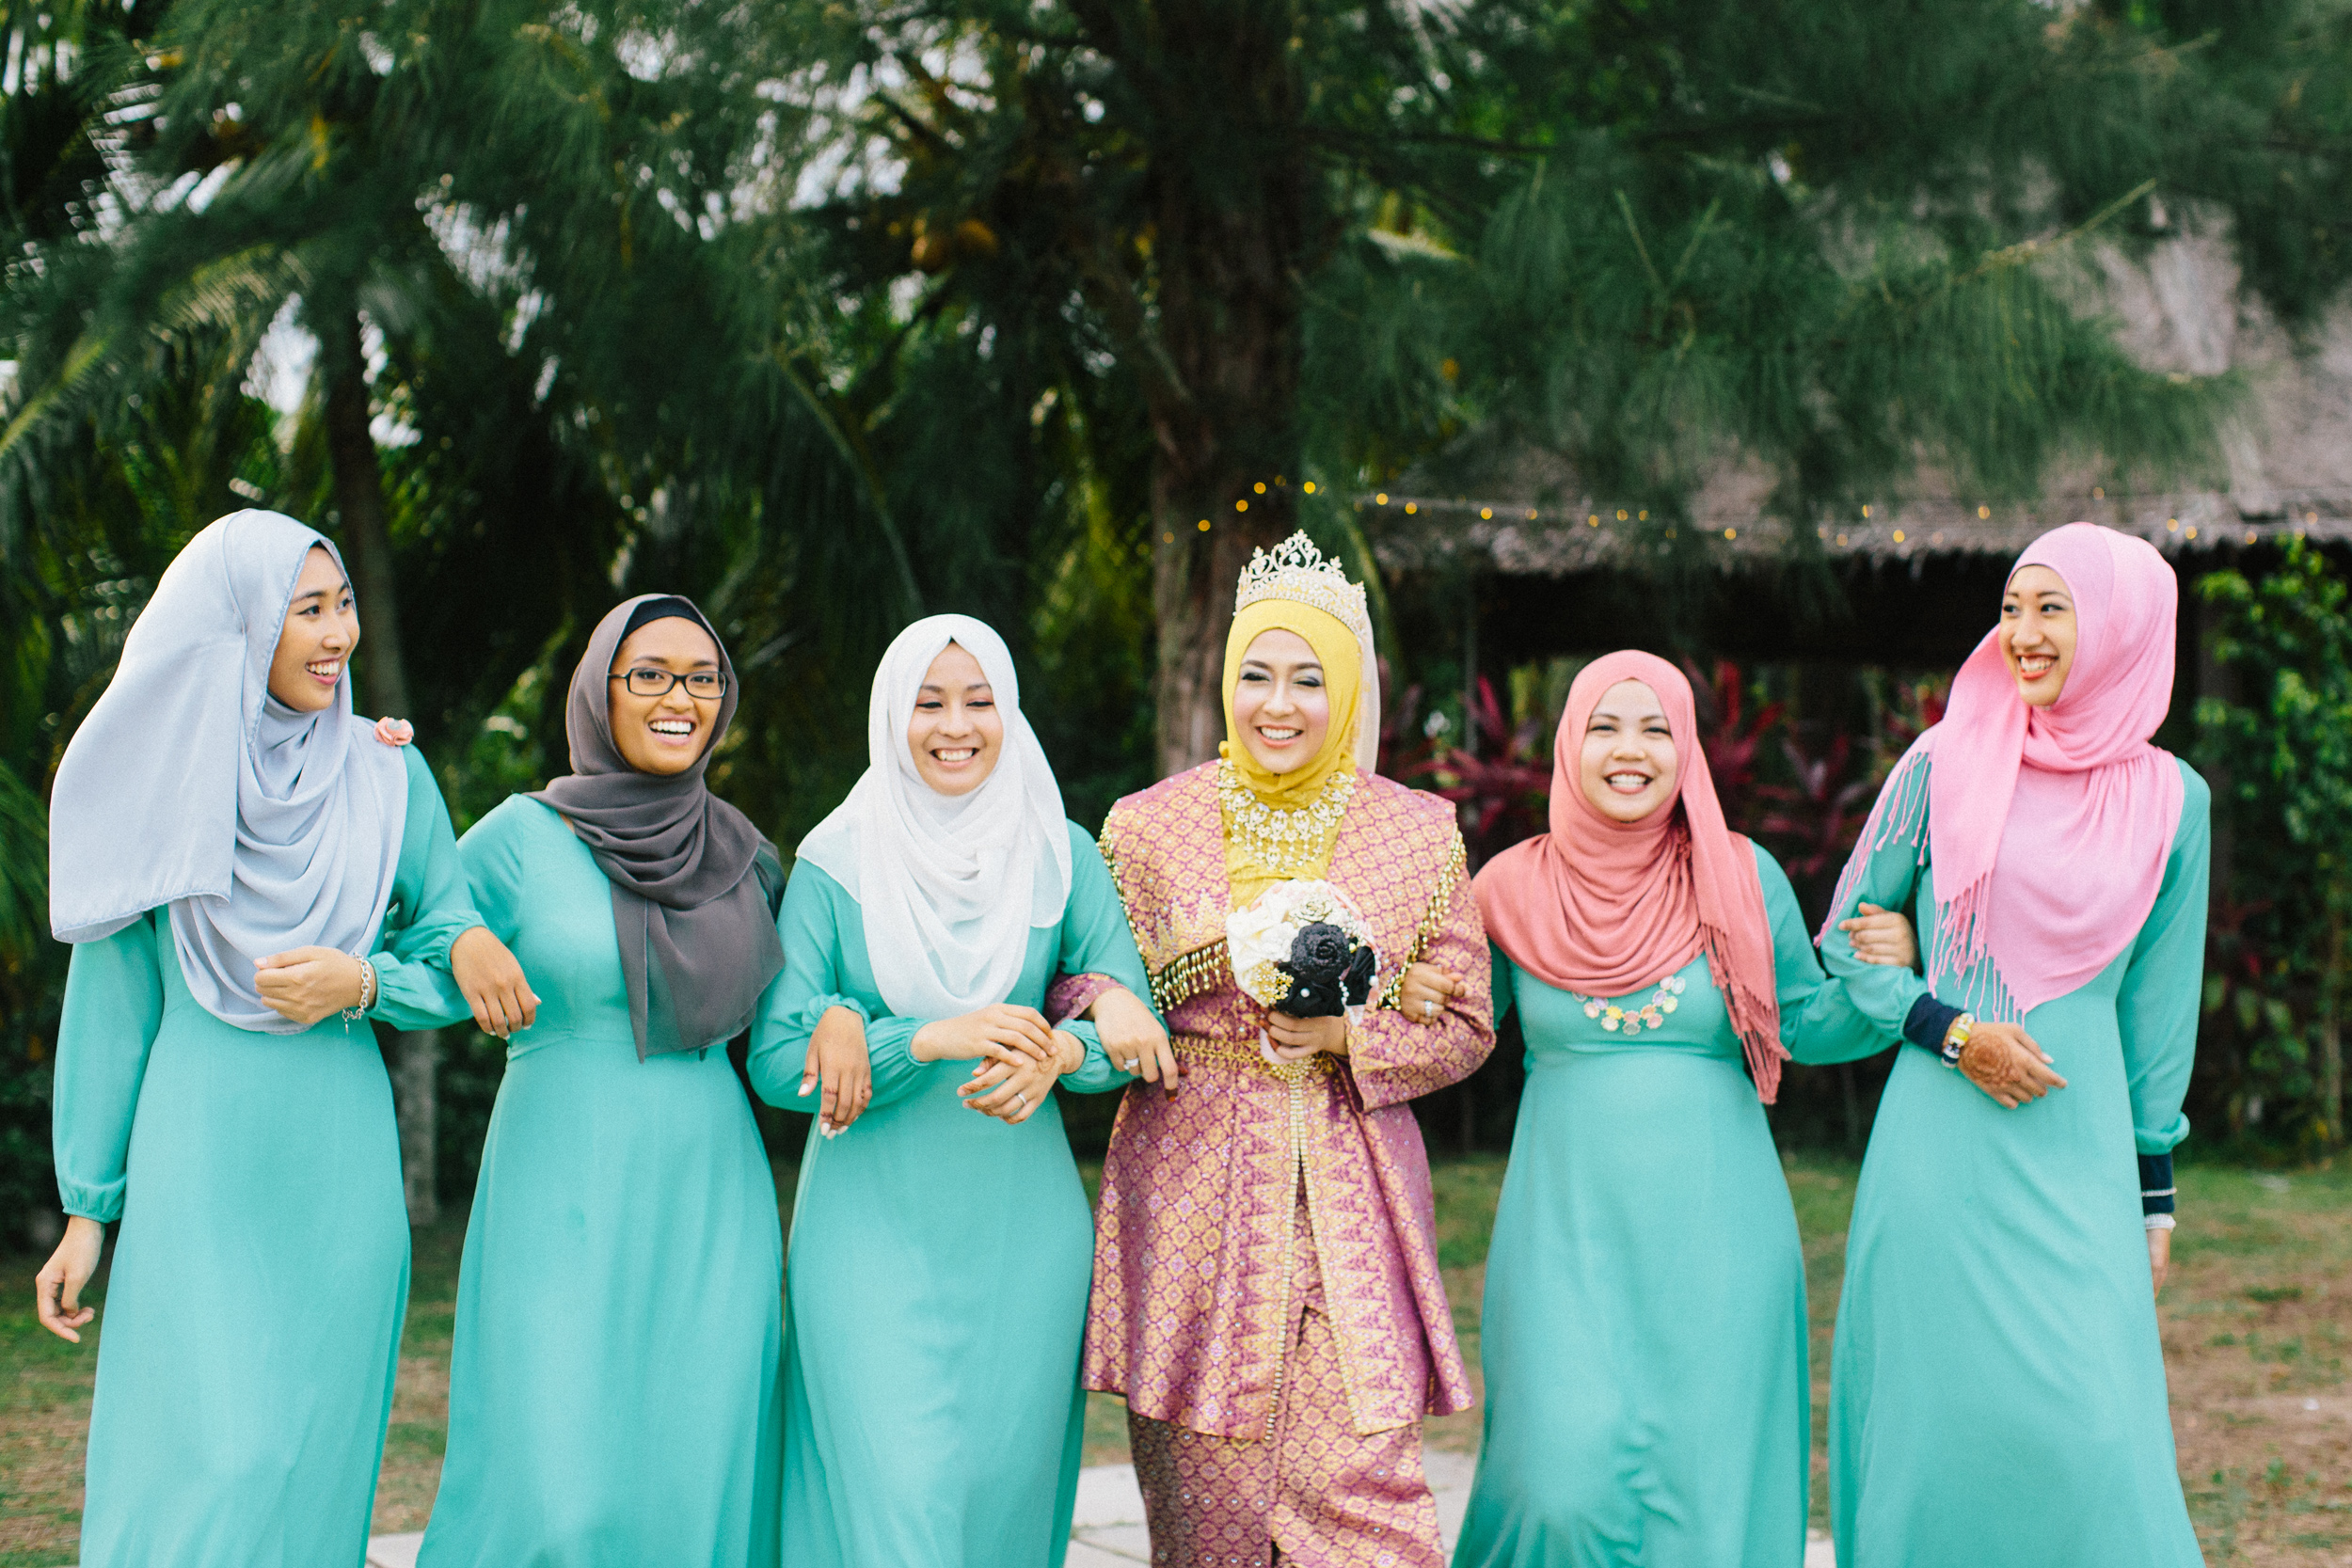 singapore-wedding-photographer-wemadethese-aisyah-helmi-38.jpg